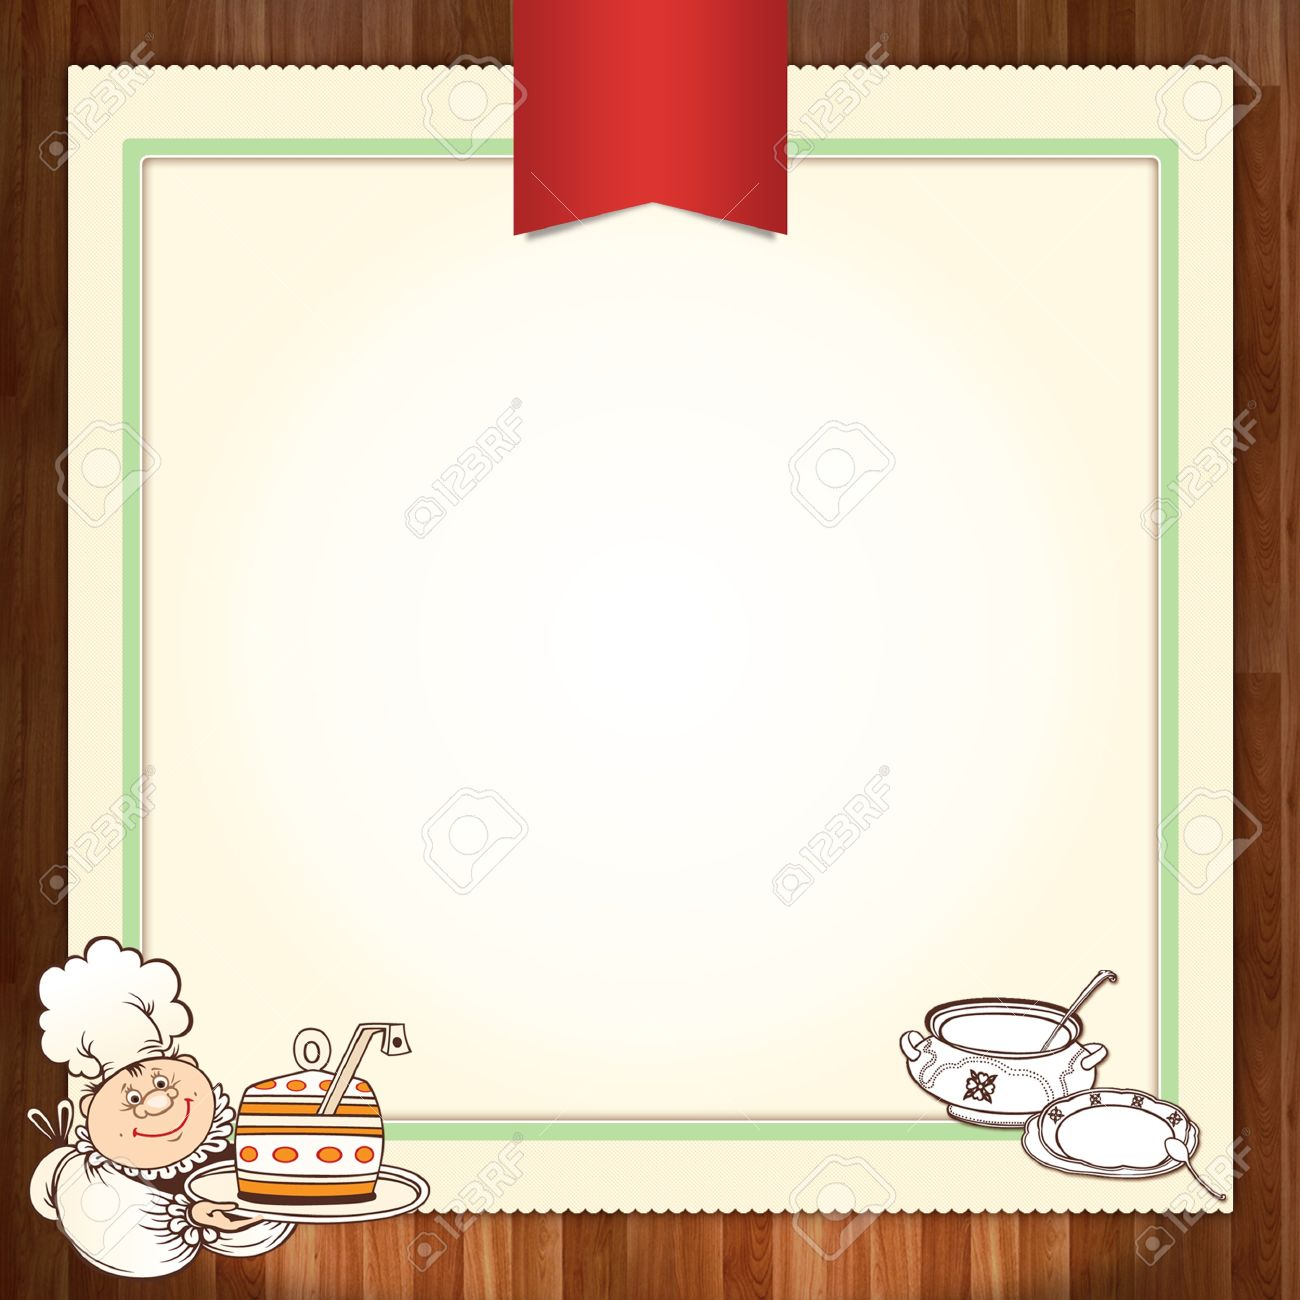 culinary menu template design with chef stock photo picture and